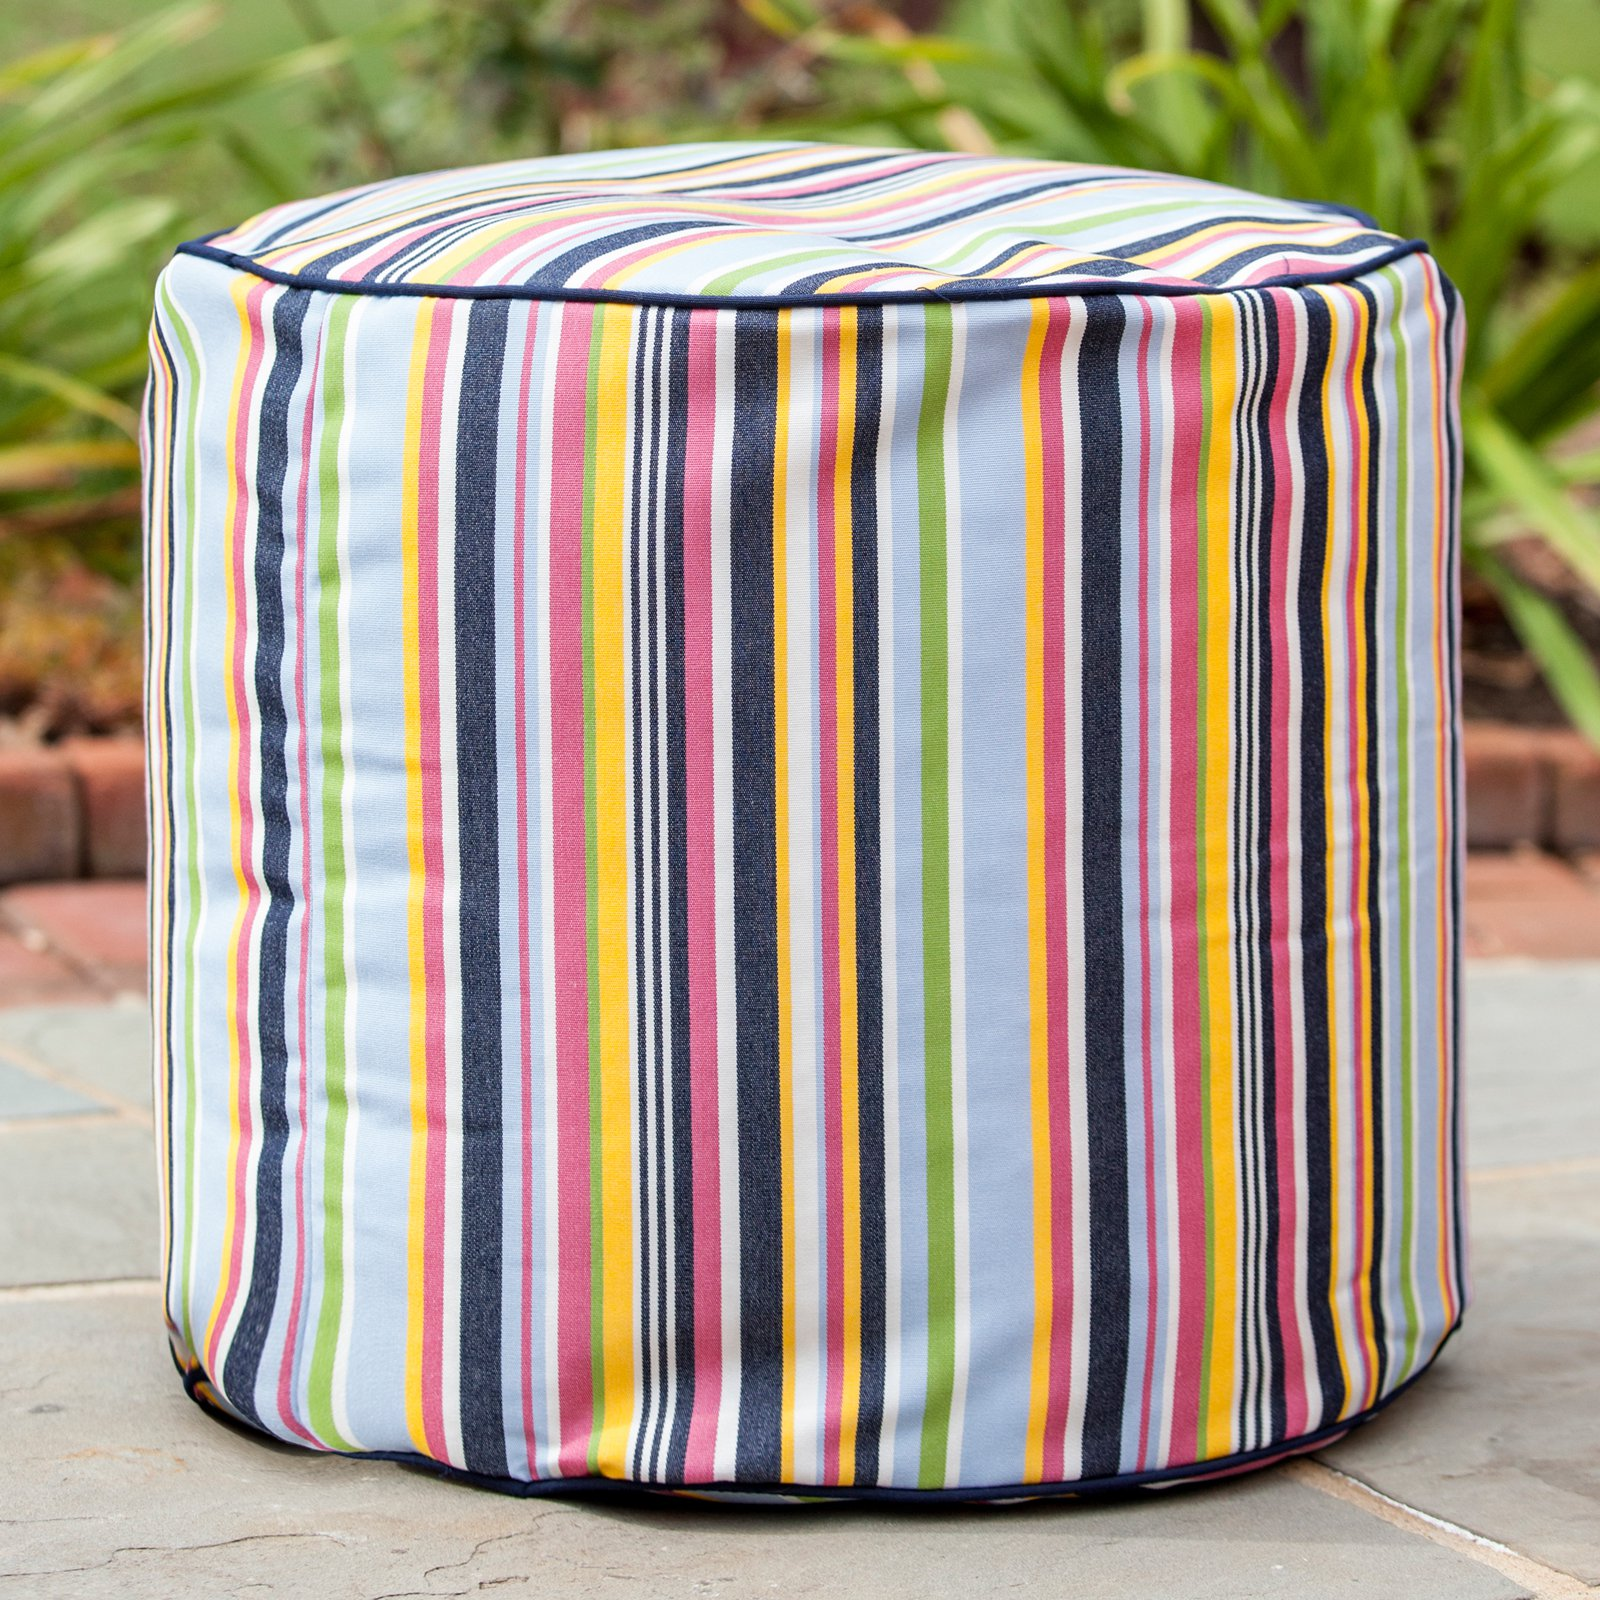 Gold Medal 19 x 17 in. Sunbrella Outdoor/Indoor Weather Resistant Pouf - Steeplechase Malibu